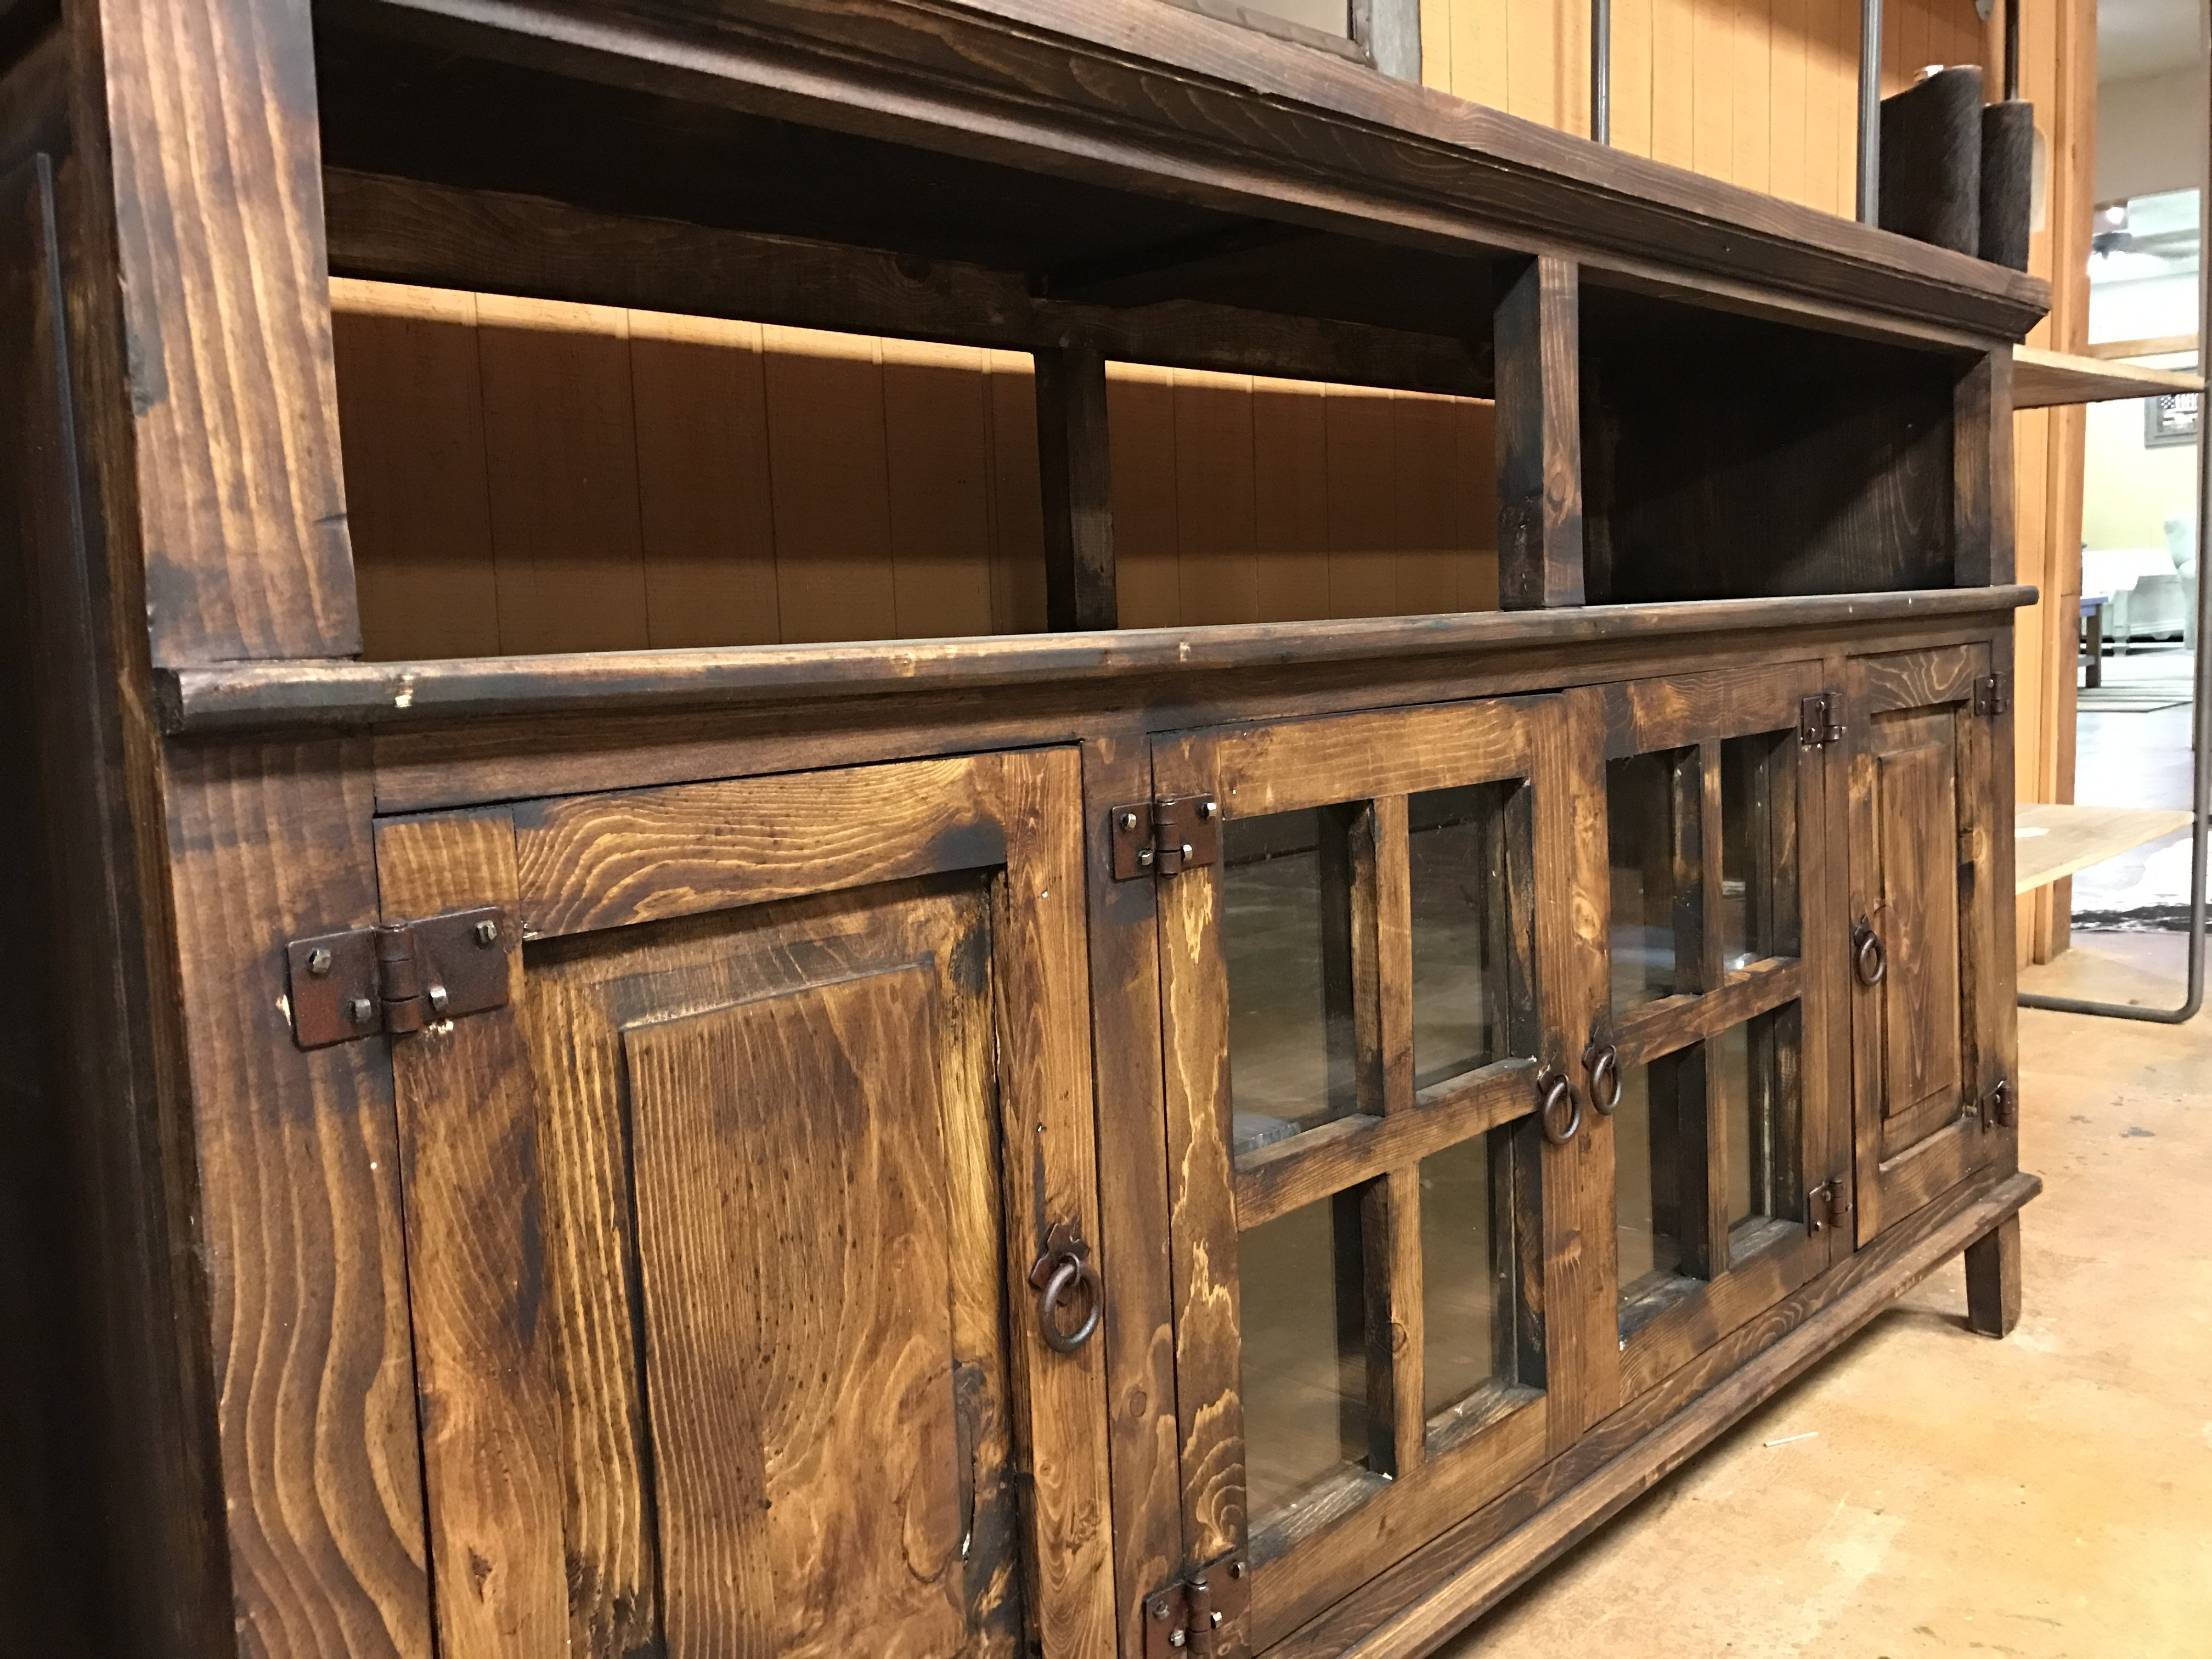 Howdy Home - Wooden Cabinets